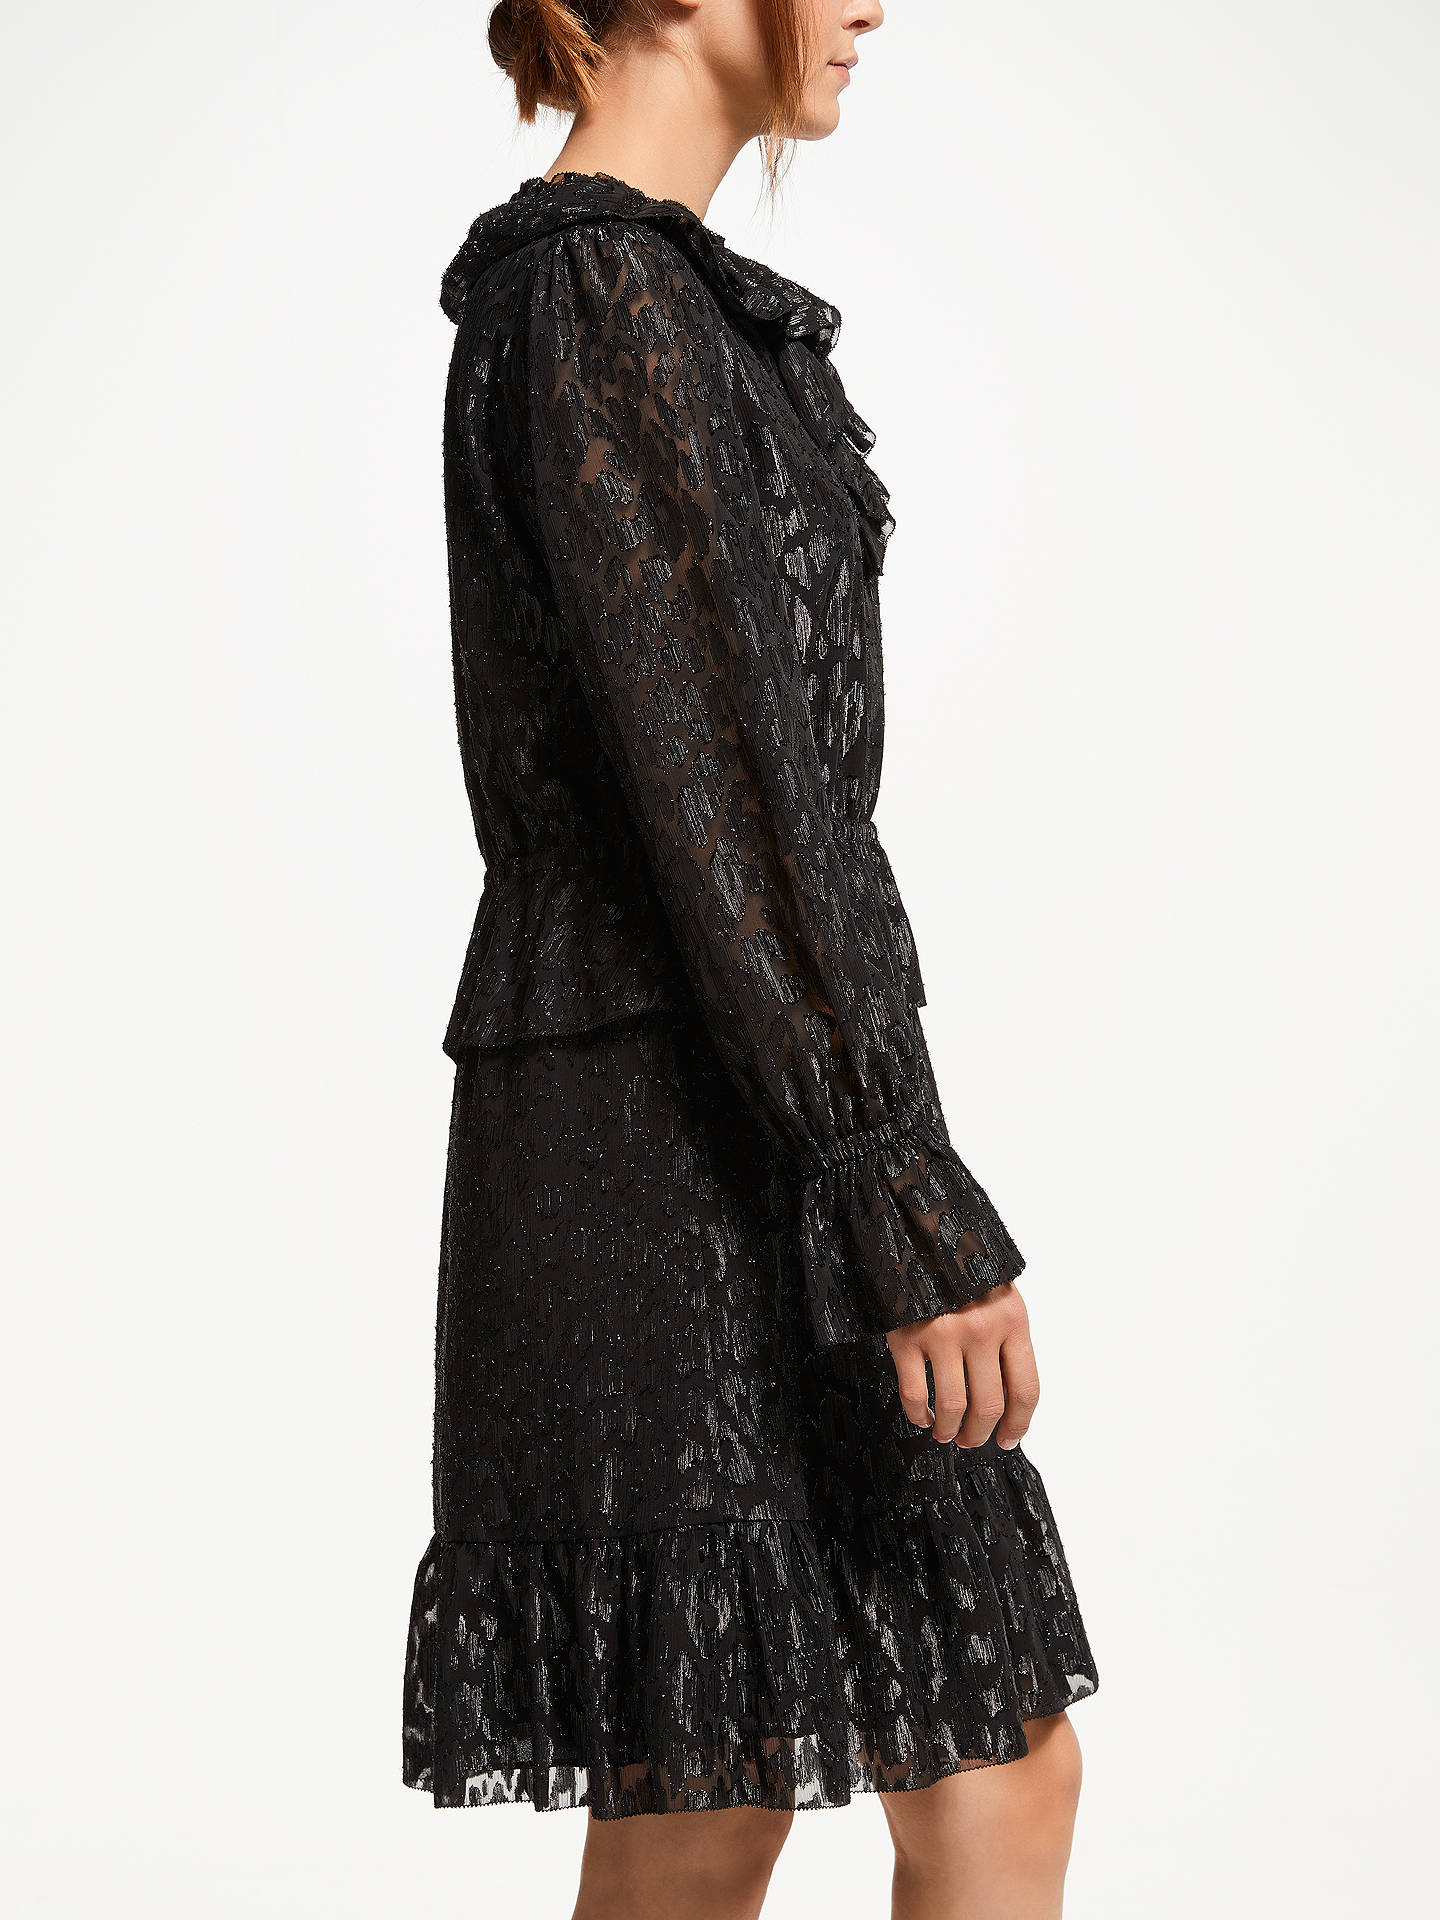 Buy Somerset by Alice Temperley Frill Metallic Detail Dress, Black/Silver, 8 Online at johnlewis.com